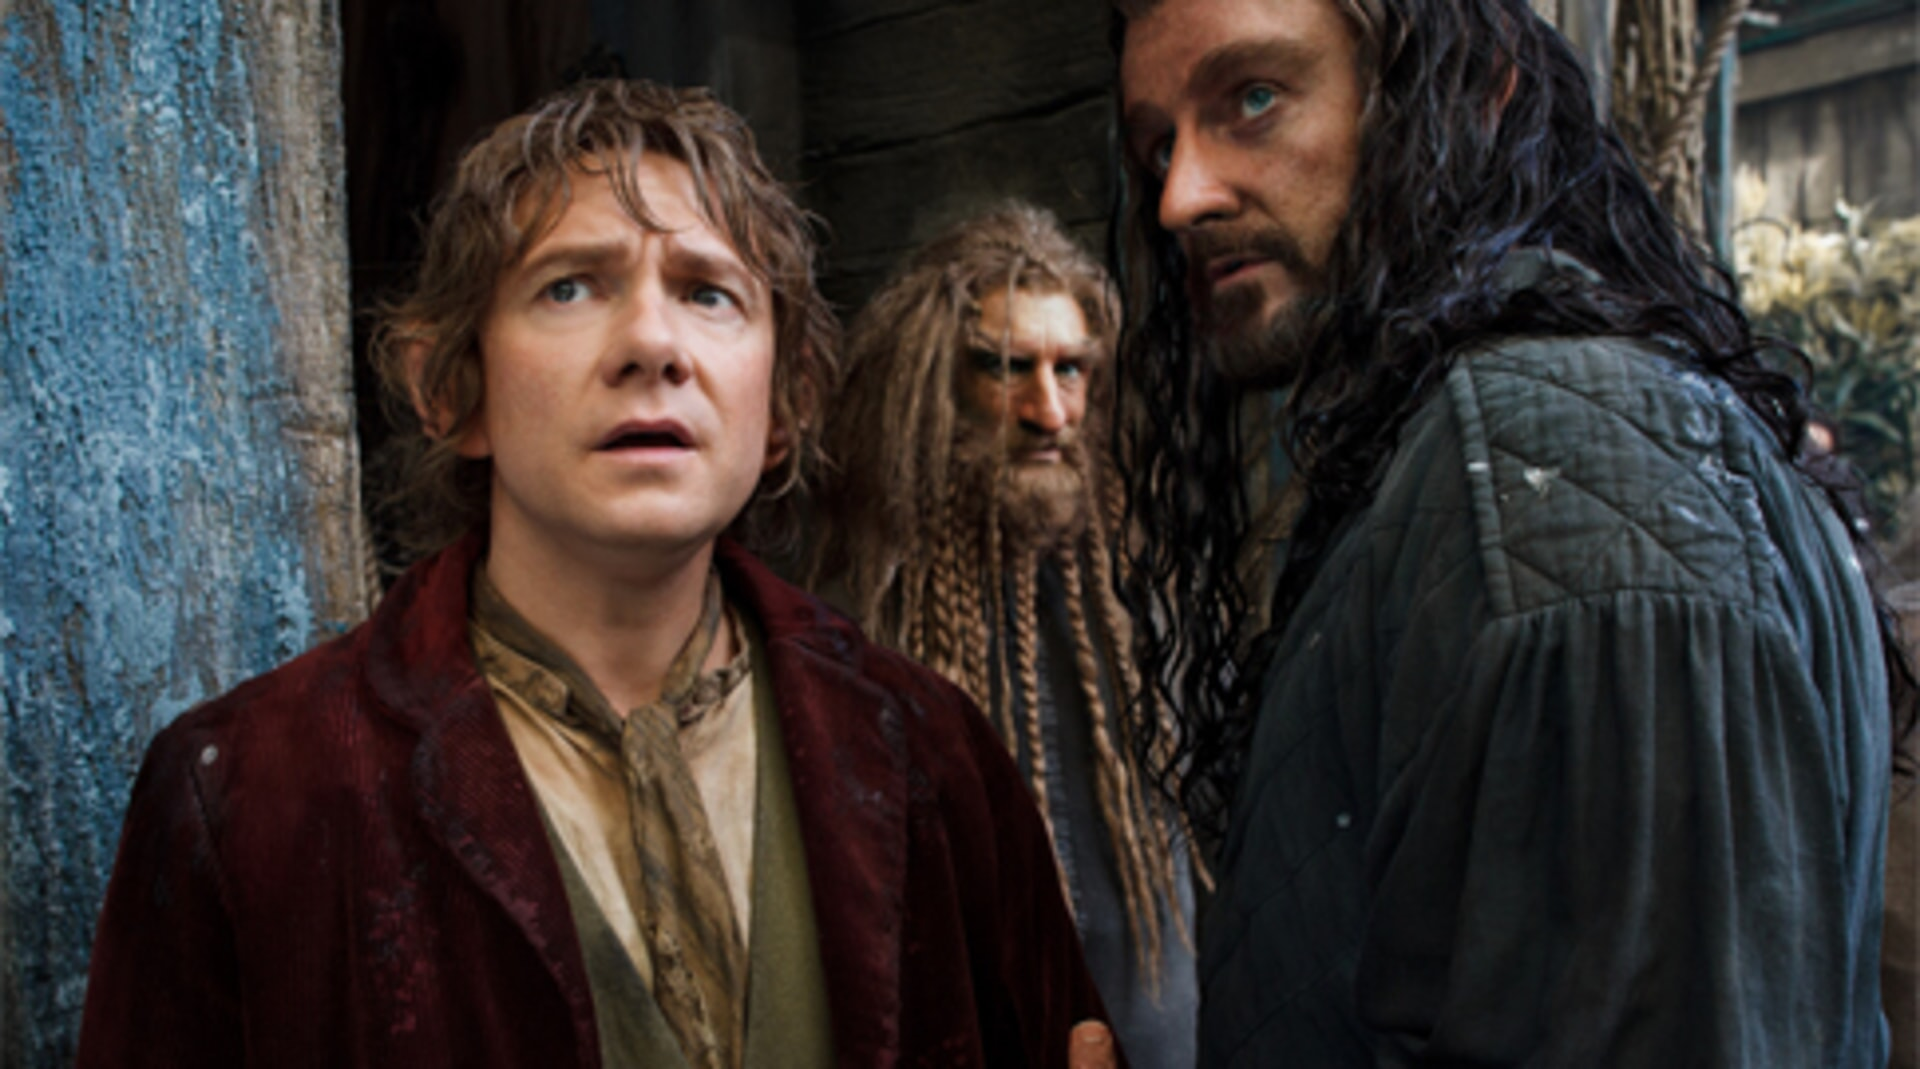 The Hobbit: The Desolation of Smaug - Image 40